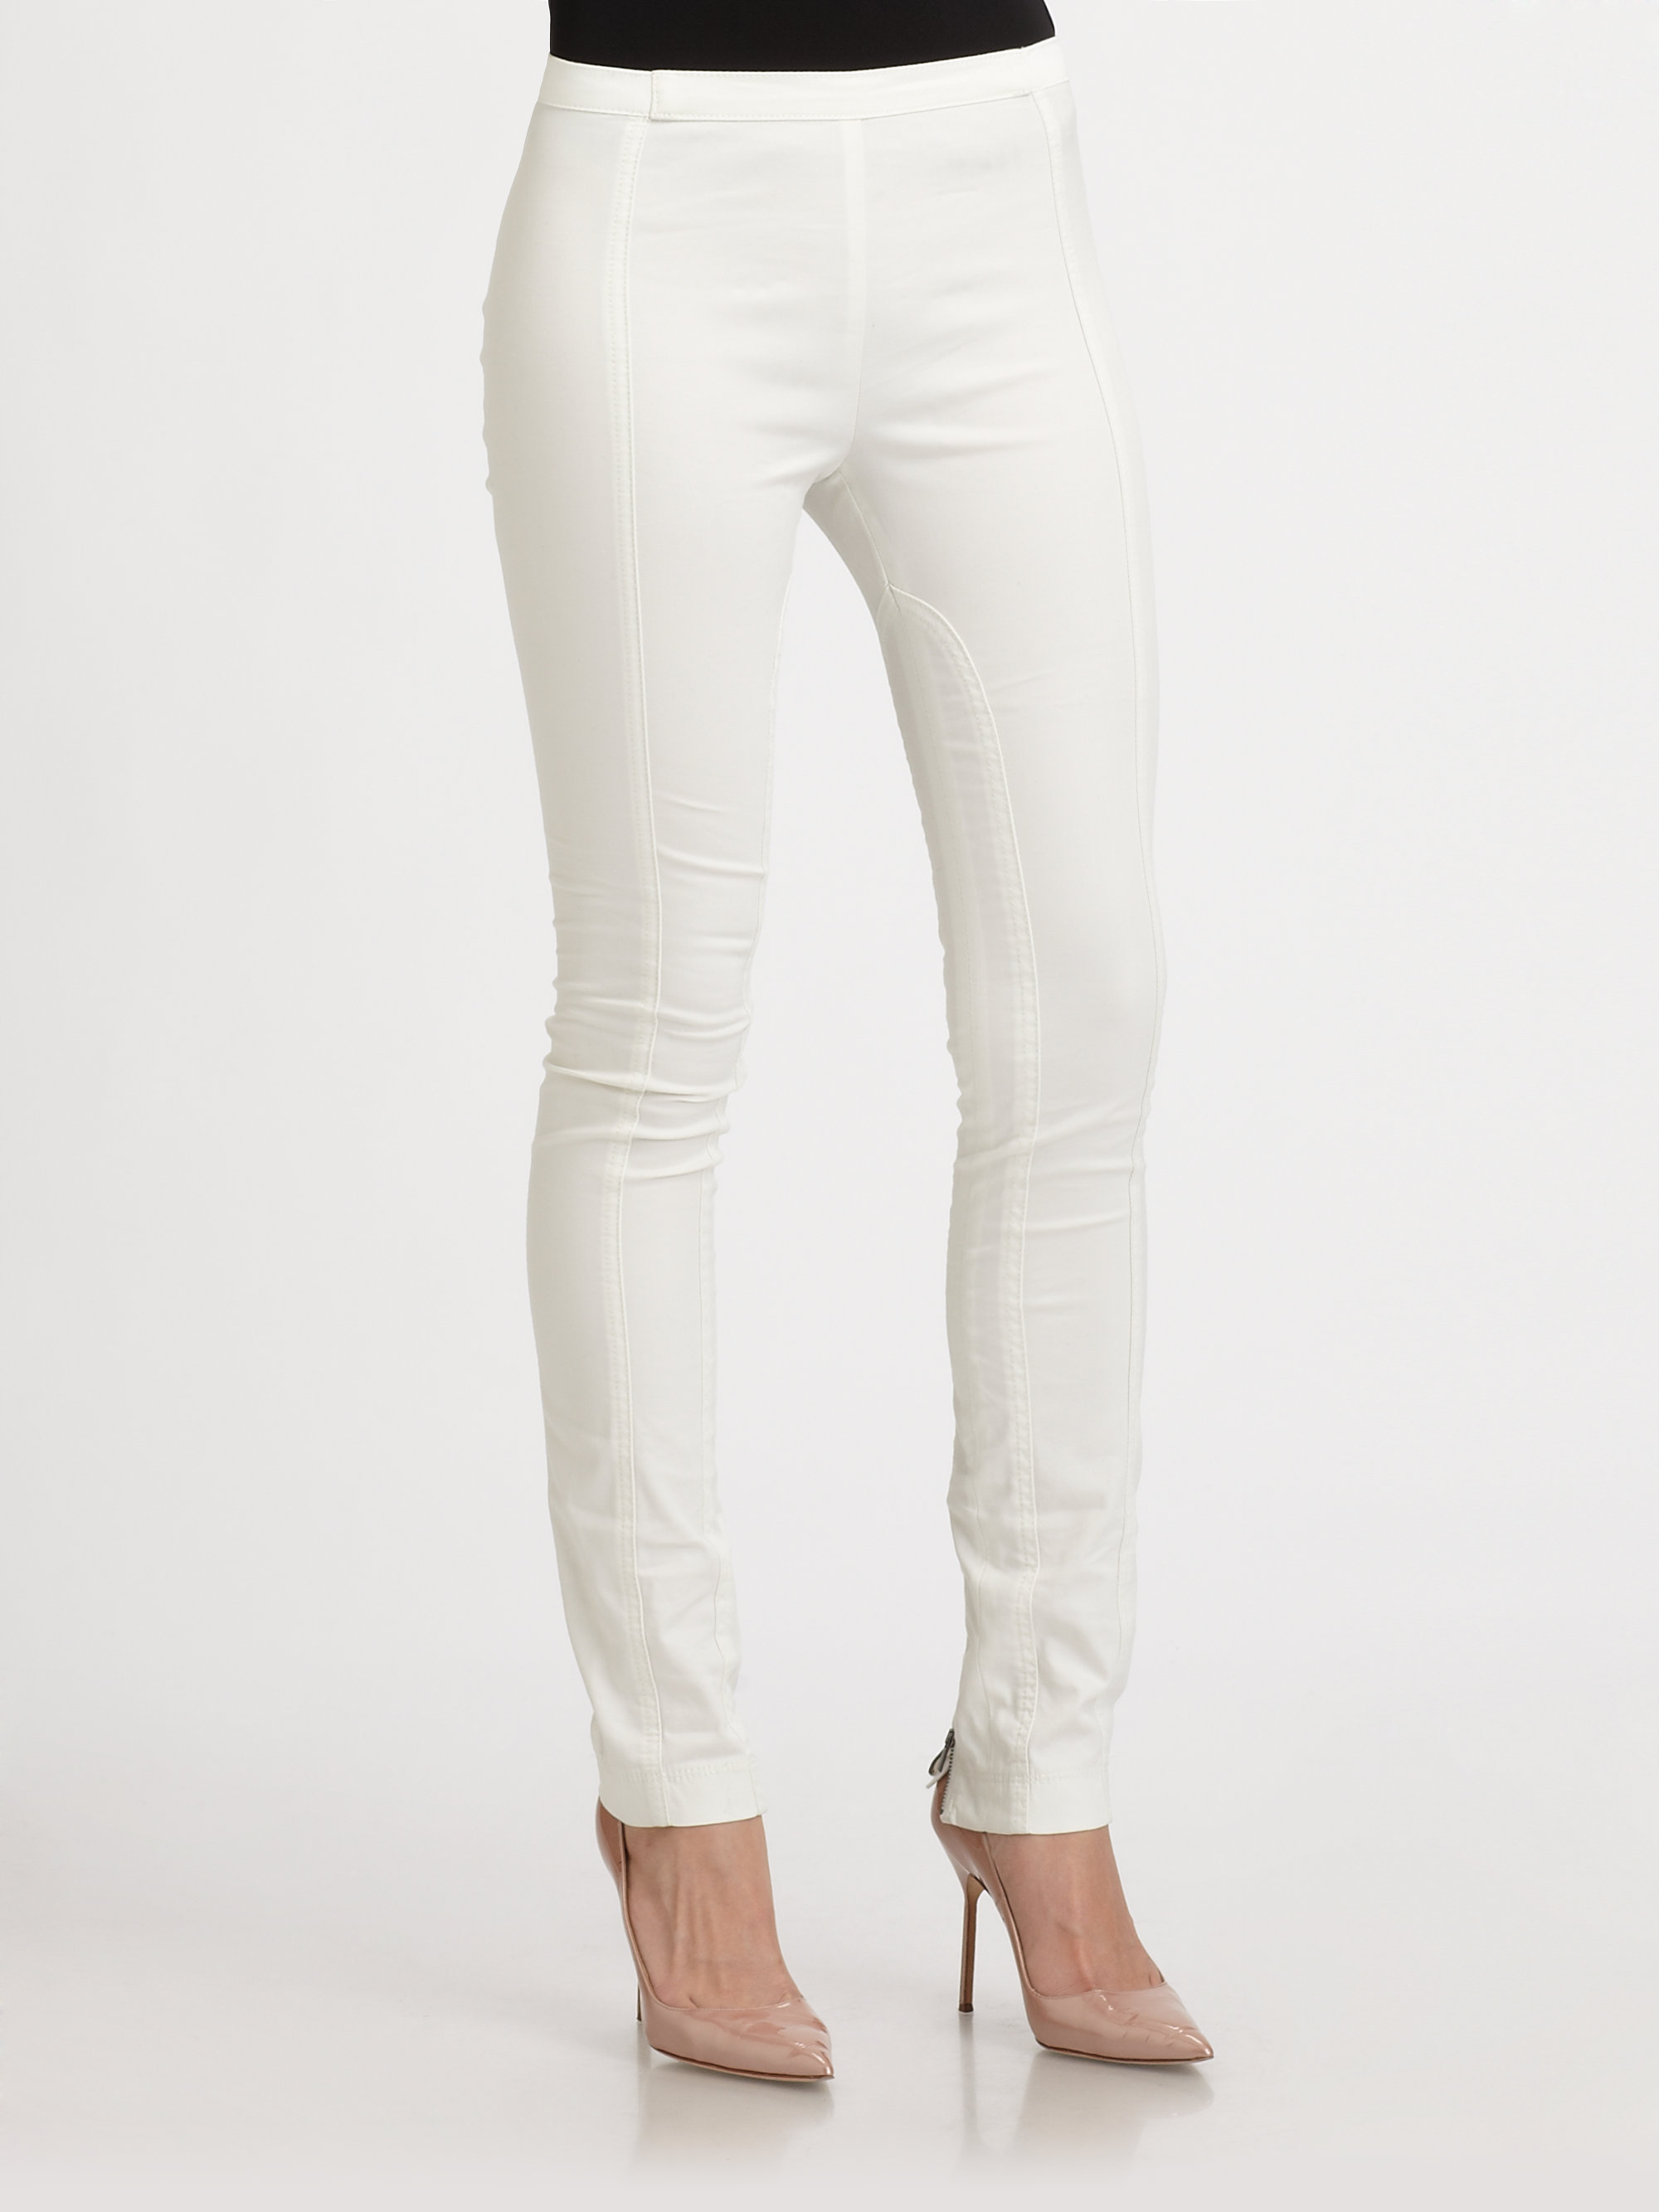 Shop eBay for great deals on Jones New York Women's Jeans. You'll find new or used products in Jones New York Women's Jeans on eBay. Jones New York Women's The Essex Skinny Smooth Fit Denim Jeans Variety. $ 8 left. New Size 6 Jones New York Womens Cuffed Capri Pants, Black or Stone Reg $69 New Jones New York Women Slimming Jeans.